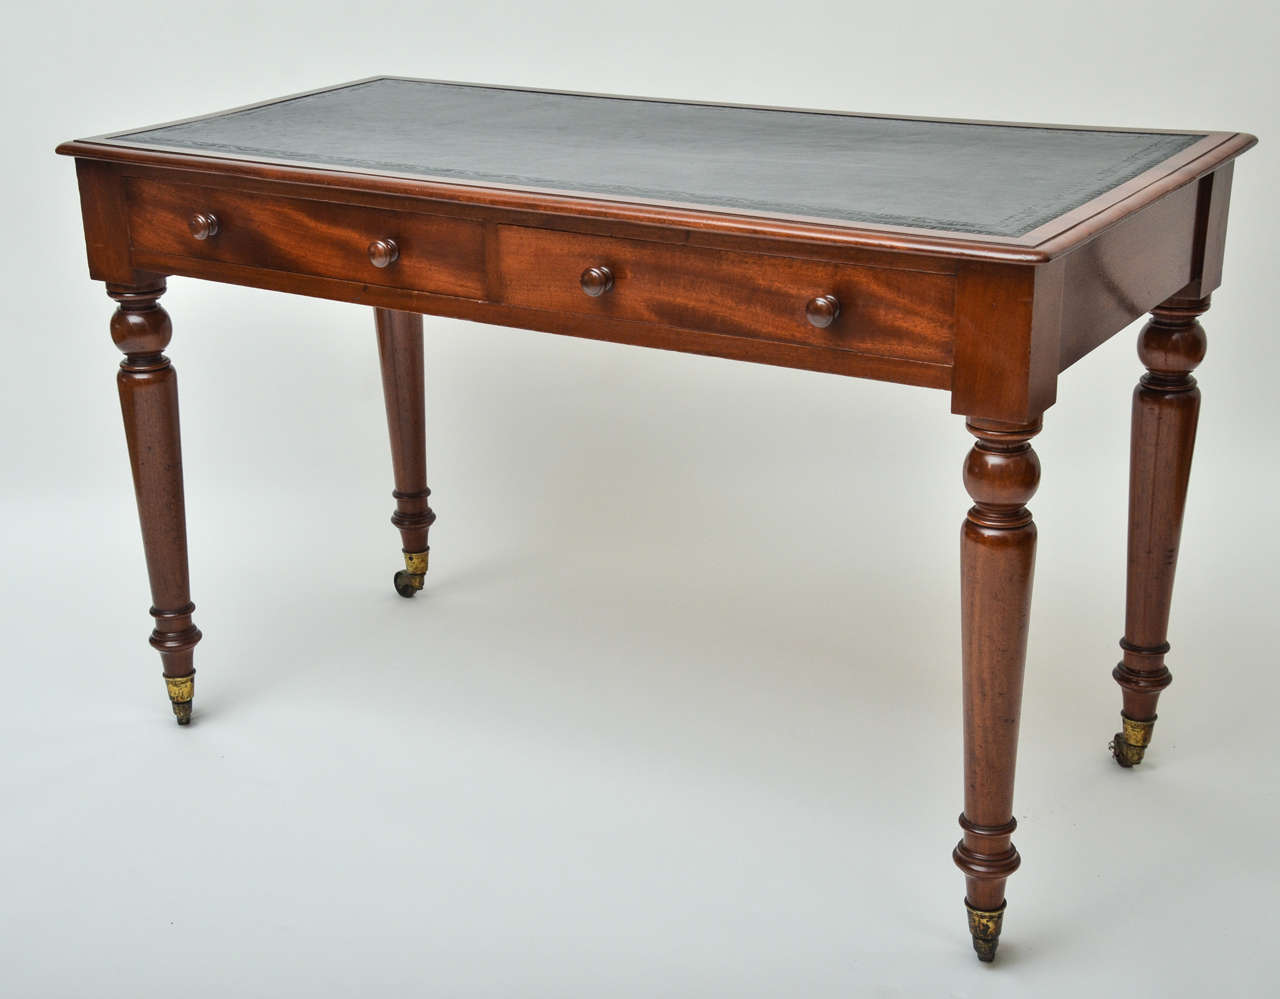 Early 19th century english mahogany writing table at 1stdibs for Table insert th